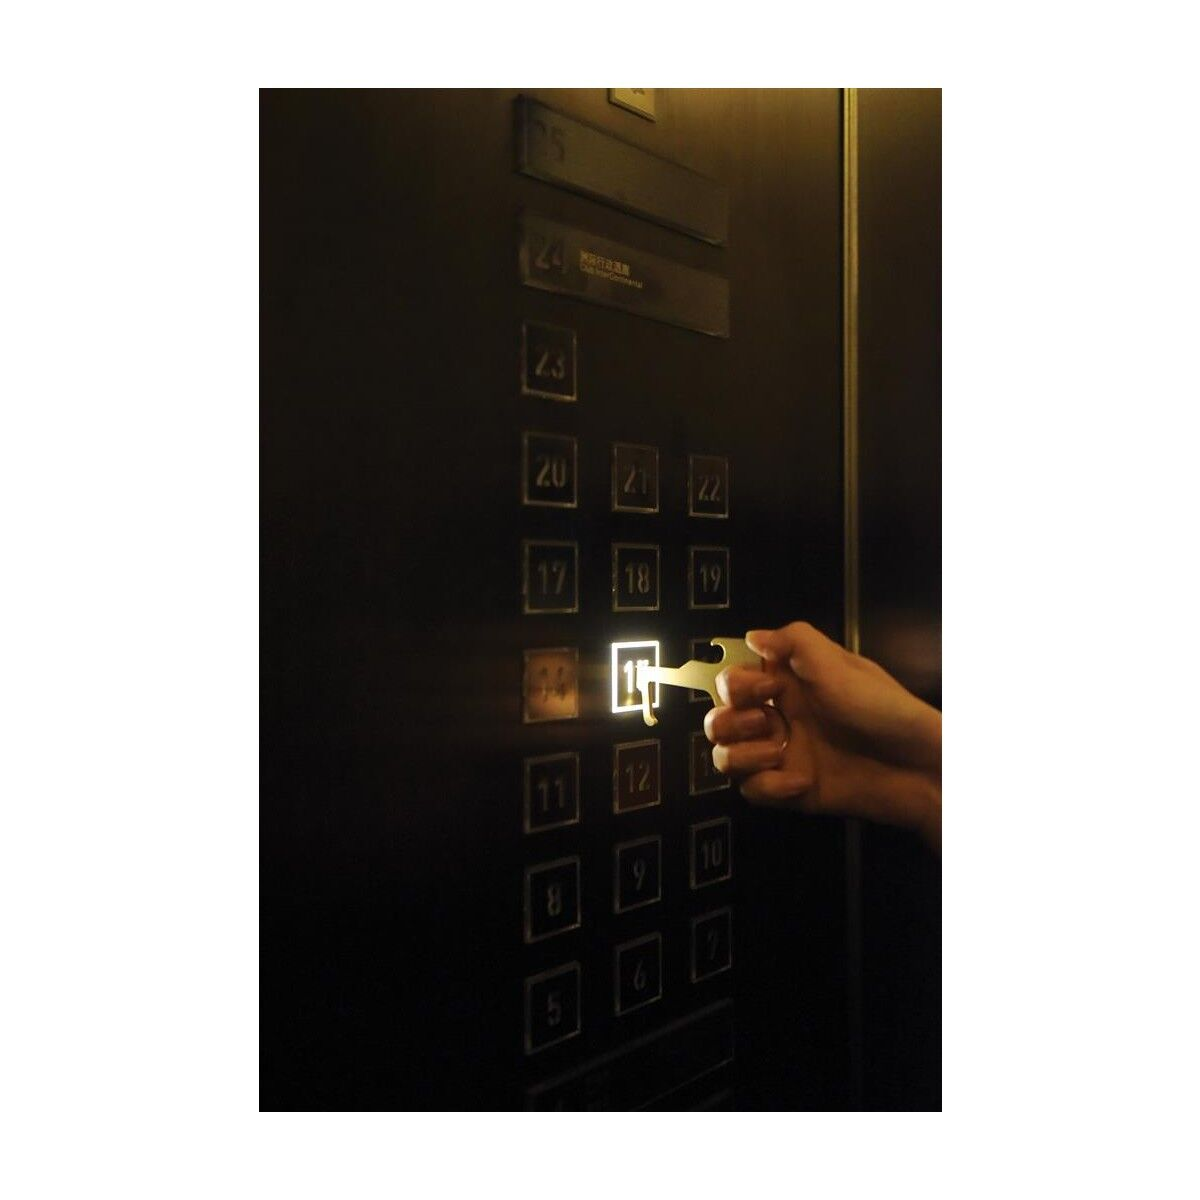 zero contact keychain used on elevator buttons